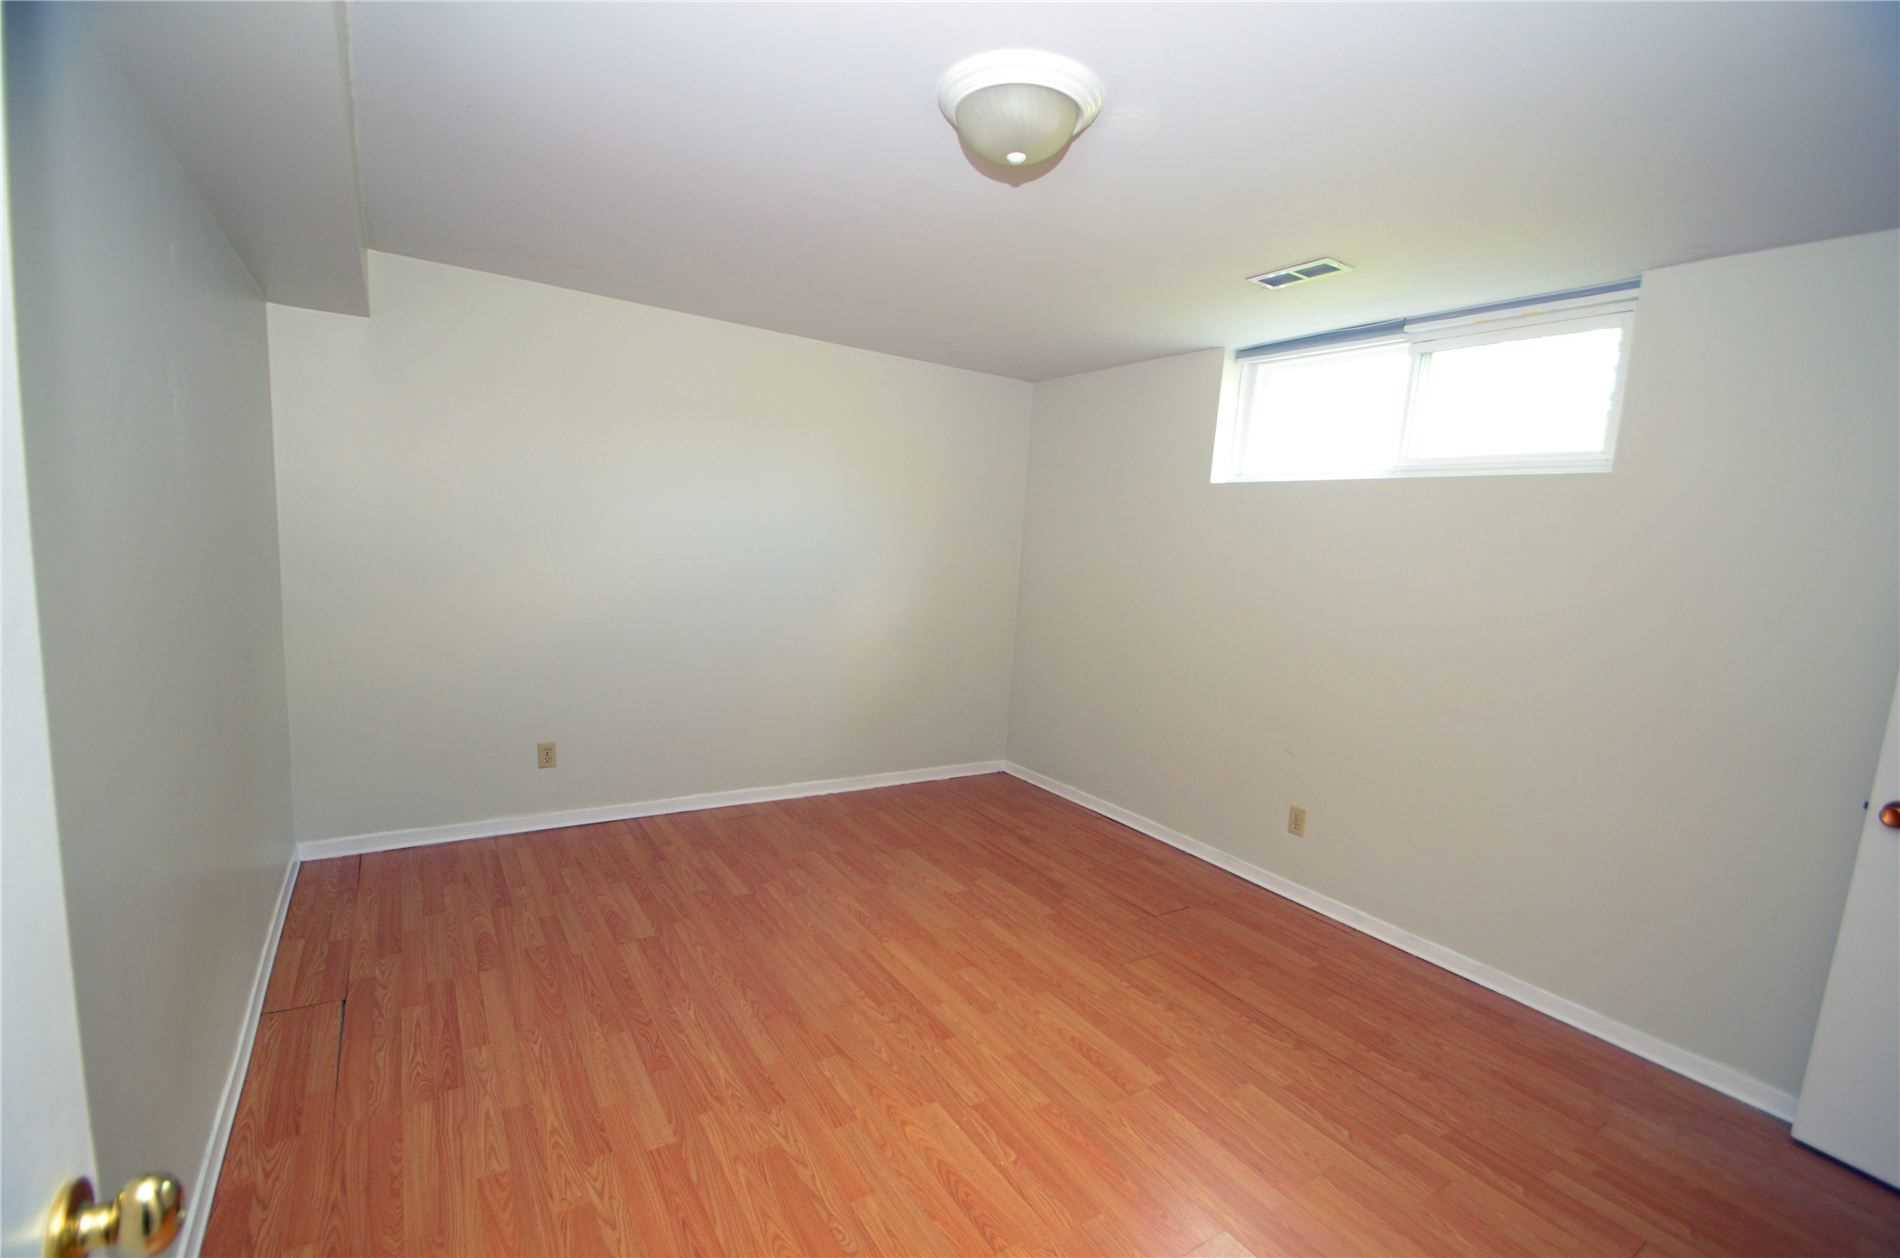 Image 7 of 9 showing inside of 3 Bedroom Detached Bungalow for Lease at 6 Mullet Rd, Toronto M2M2A6